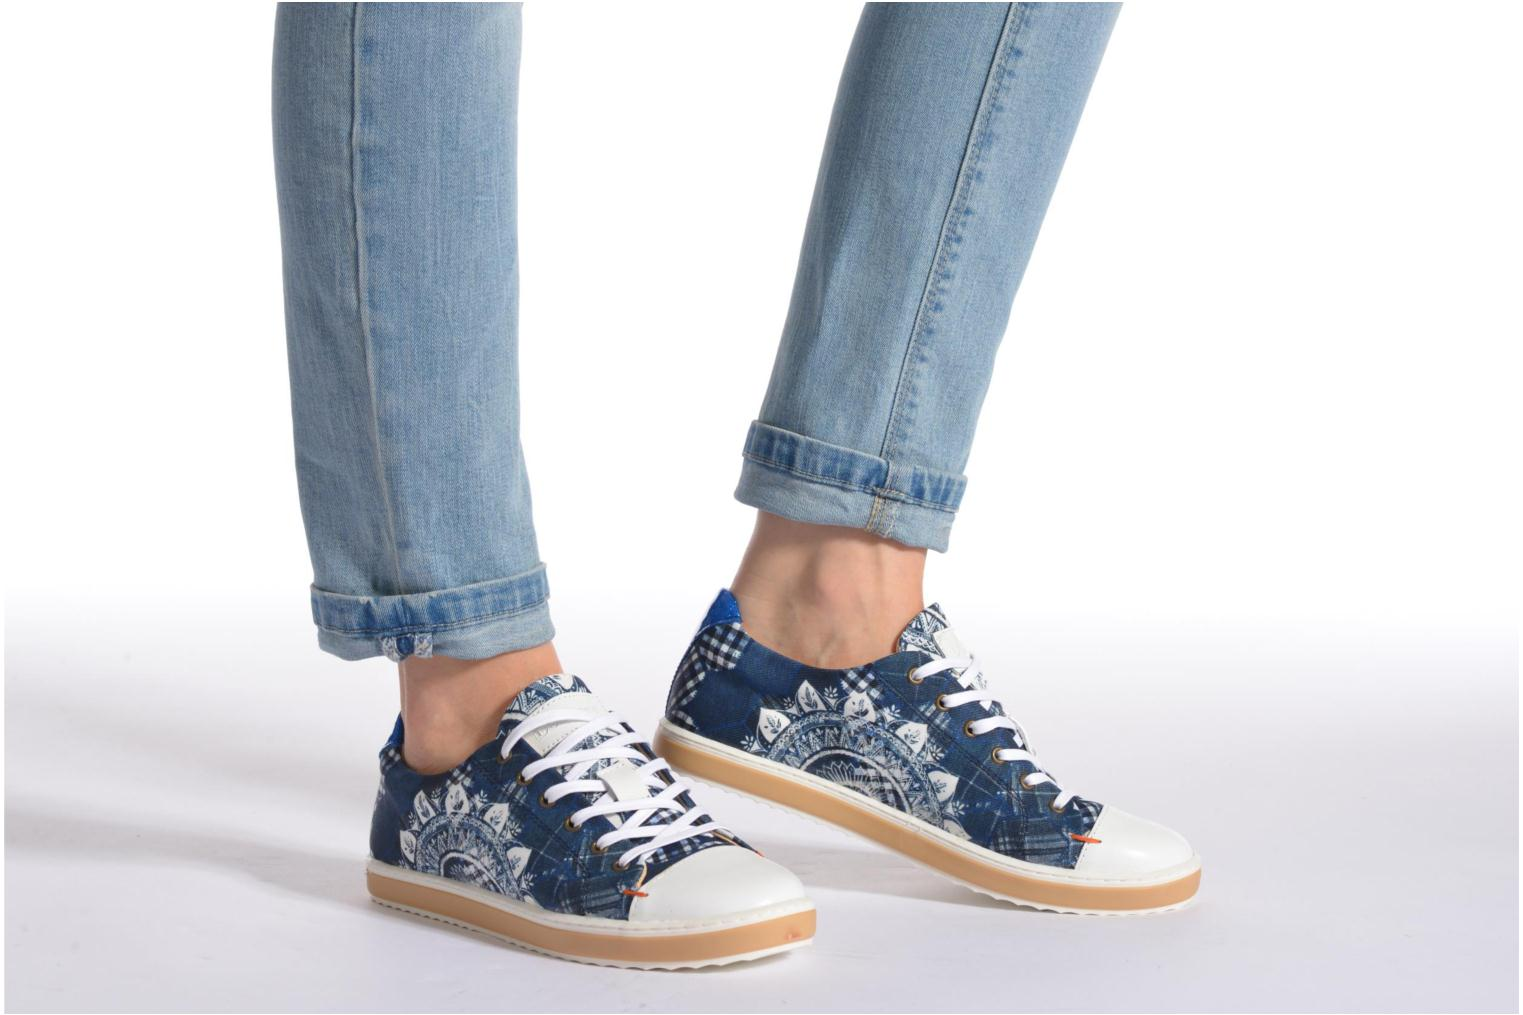 SHOES_HAPPYNESS 5006 JEANS